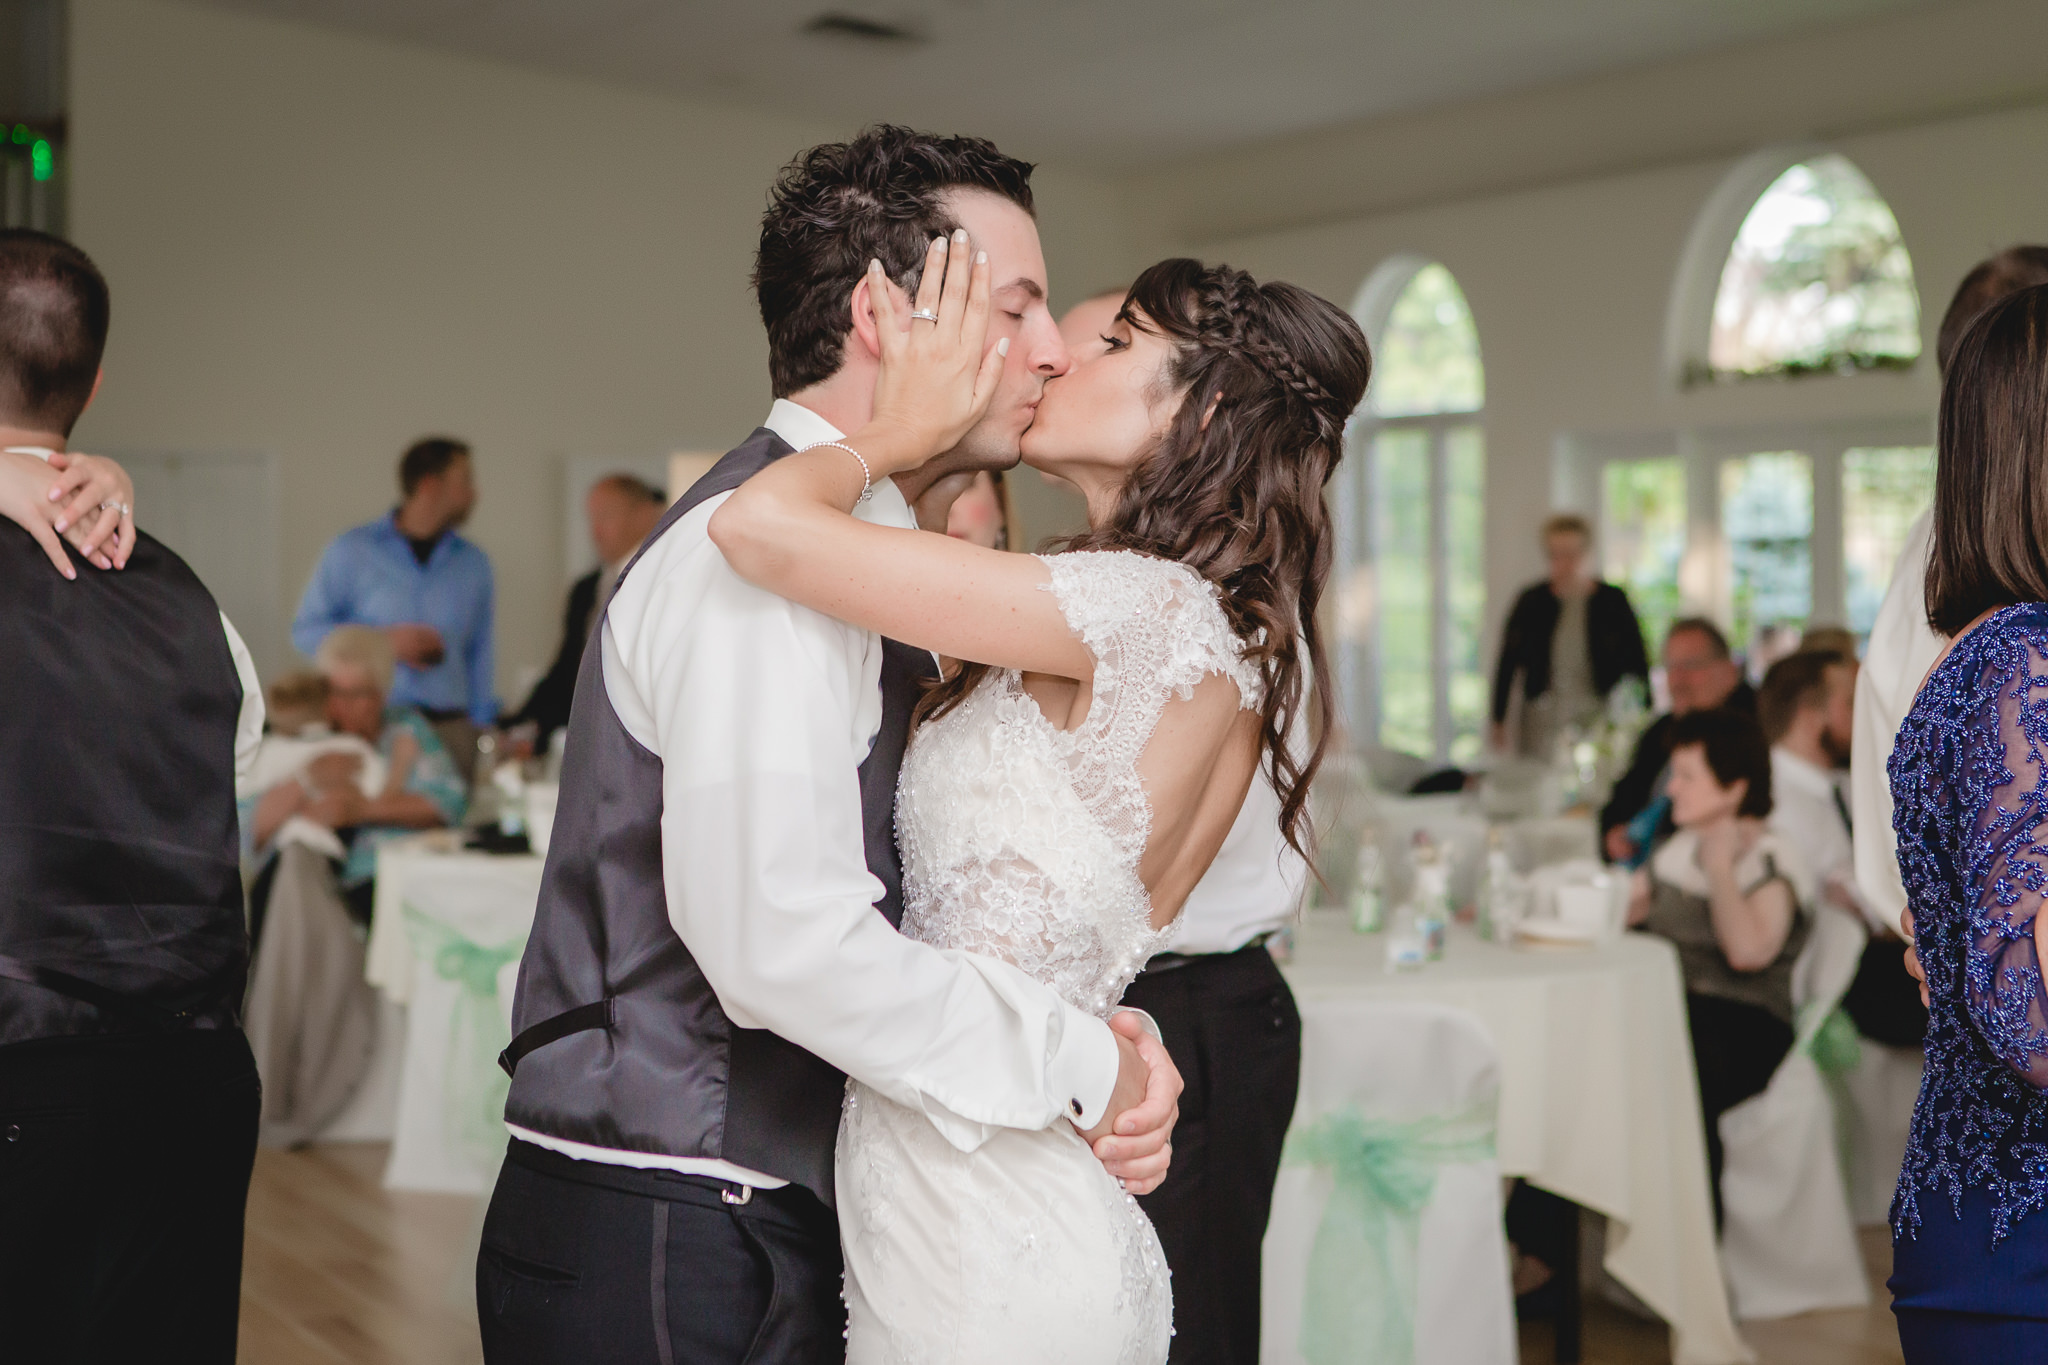 Bride and groom kiss on the dance floor at their wedding reception